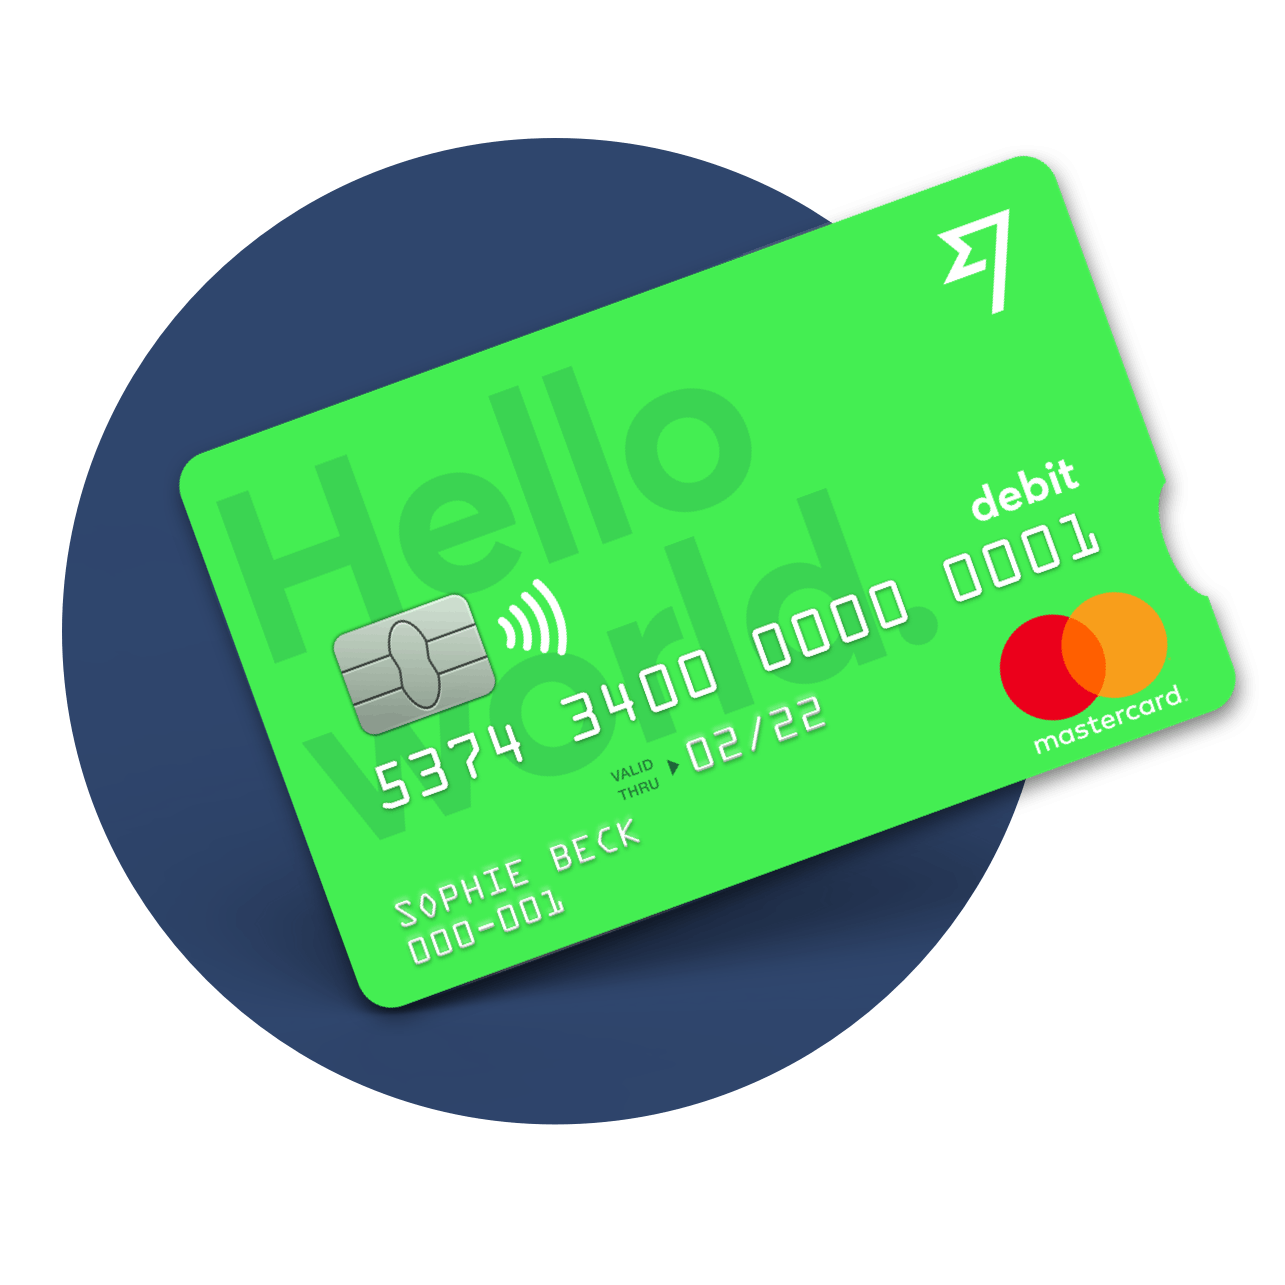 transferwise debit card a bright green card to save you money when